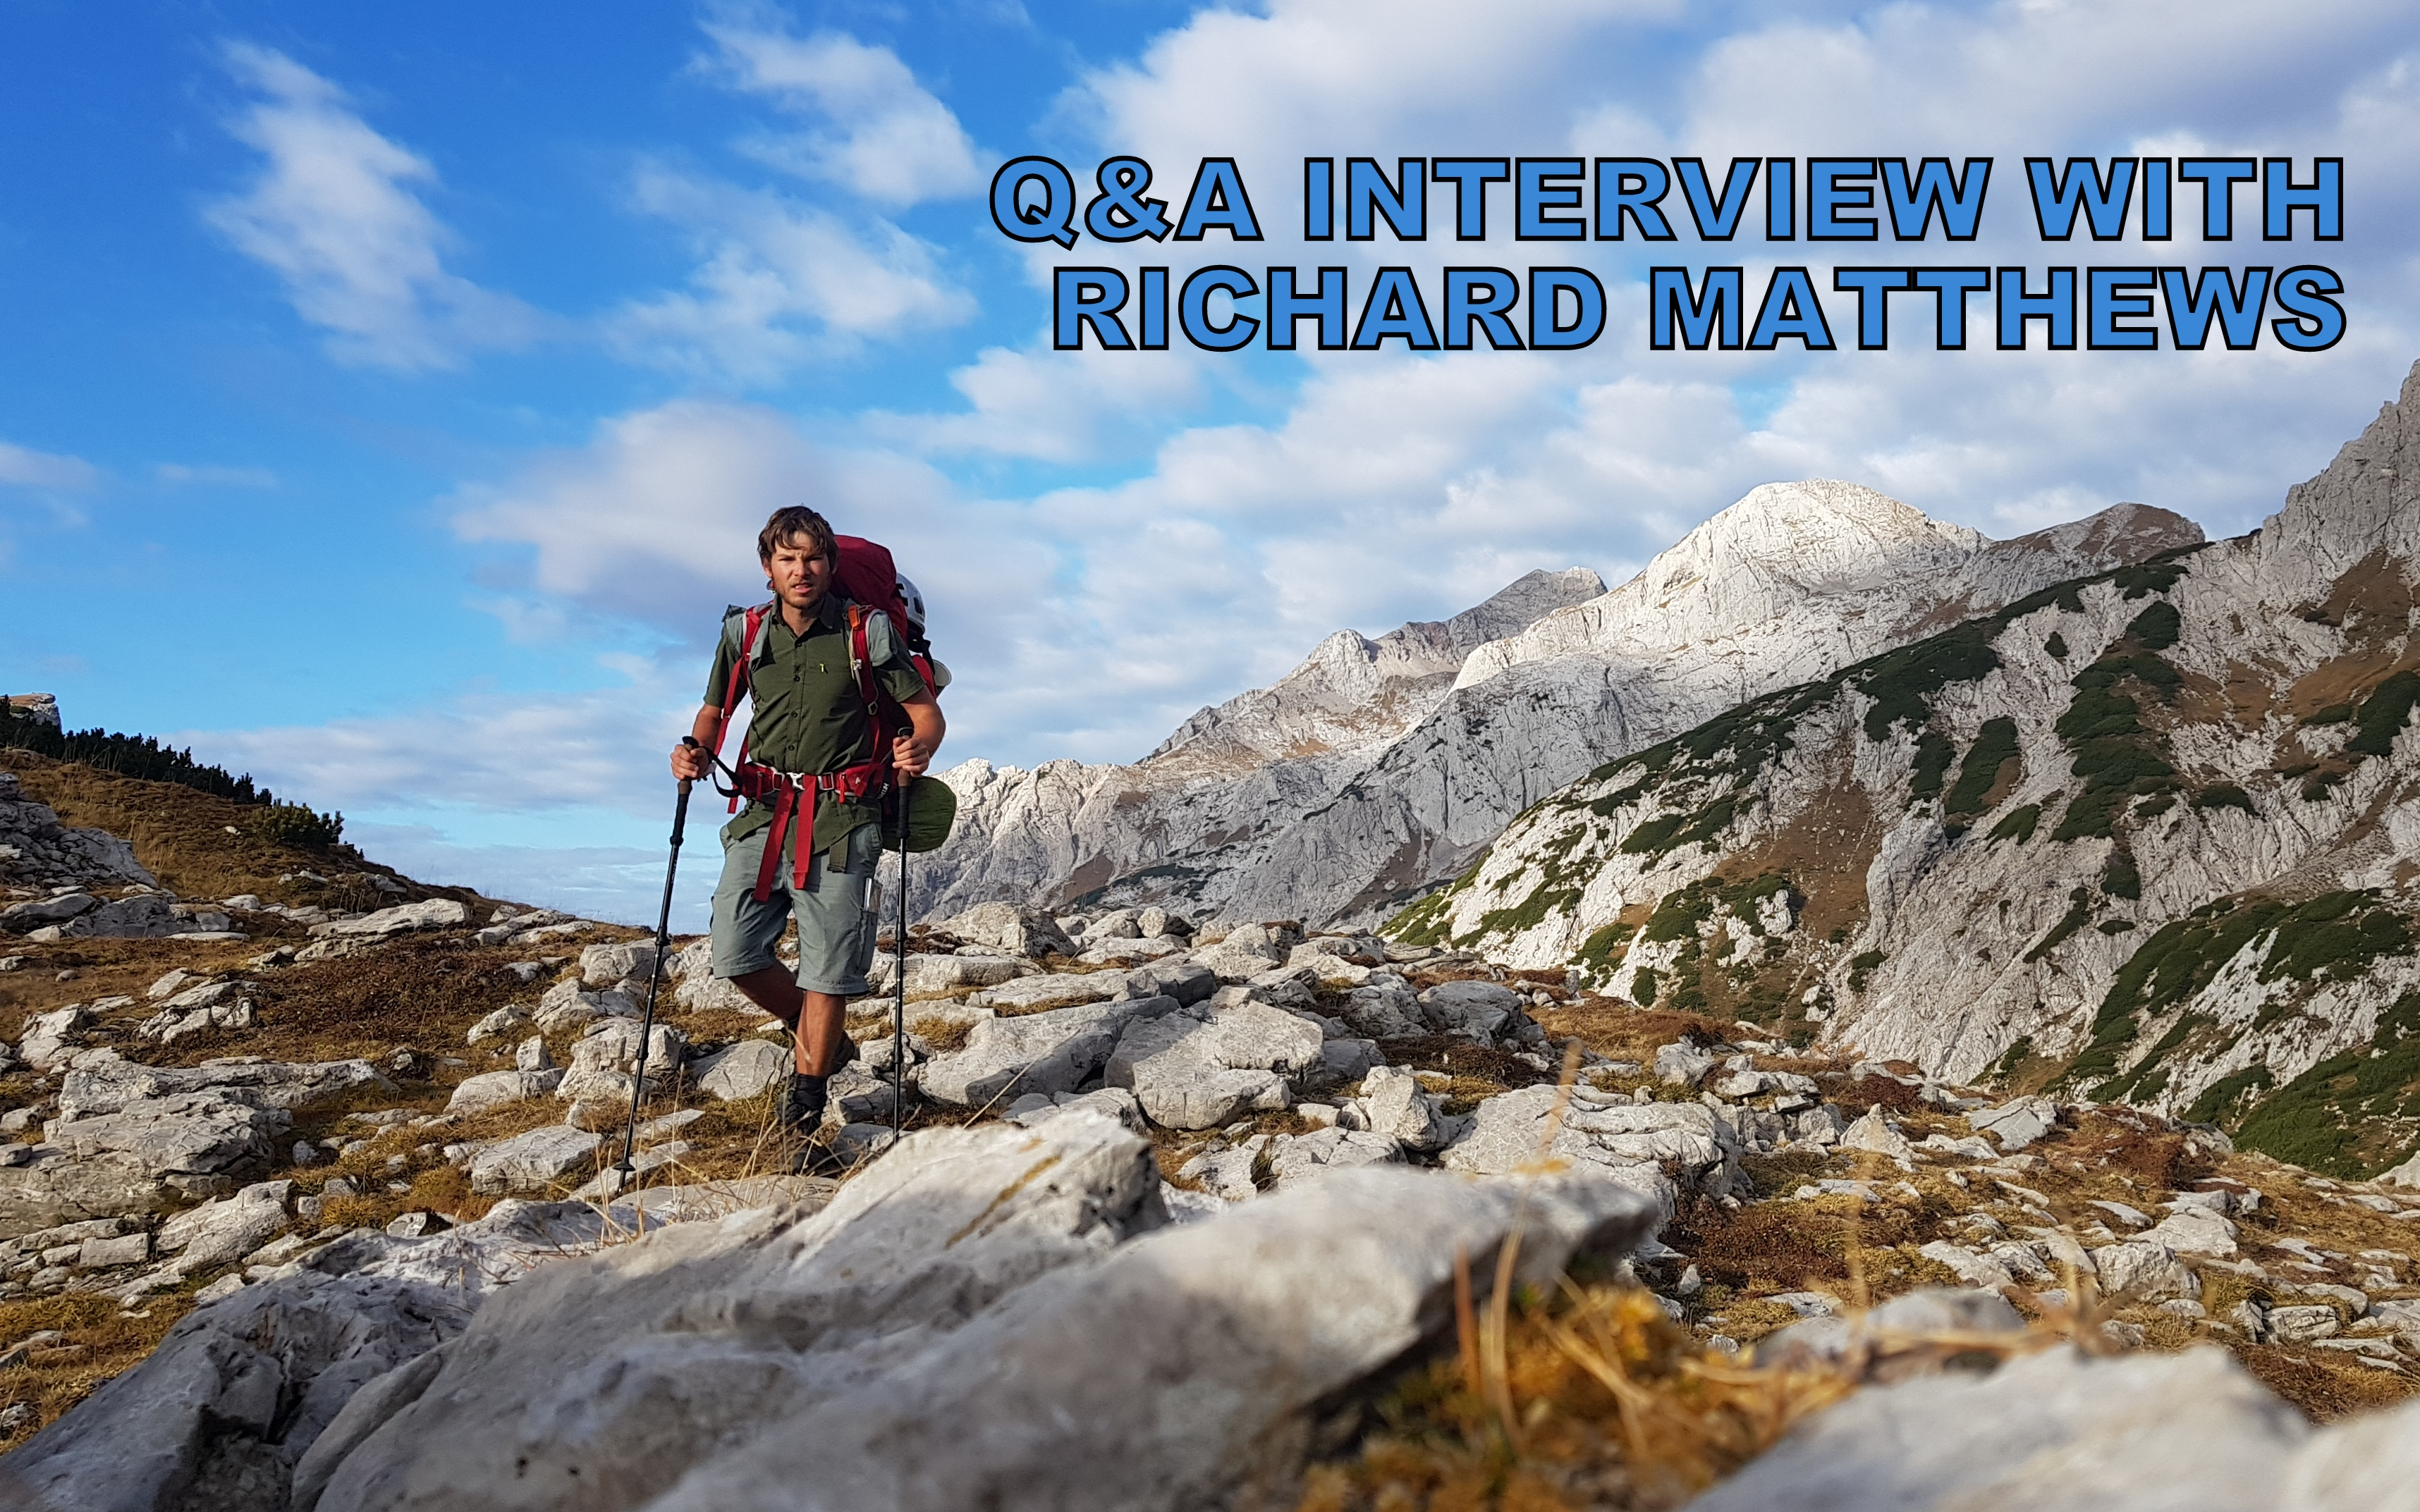 Q&A interview with Richard Matthews